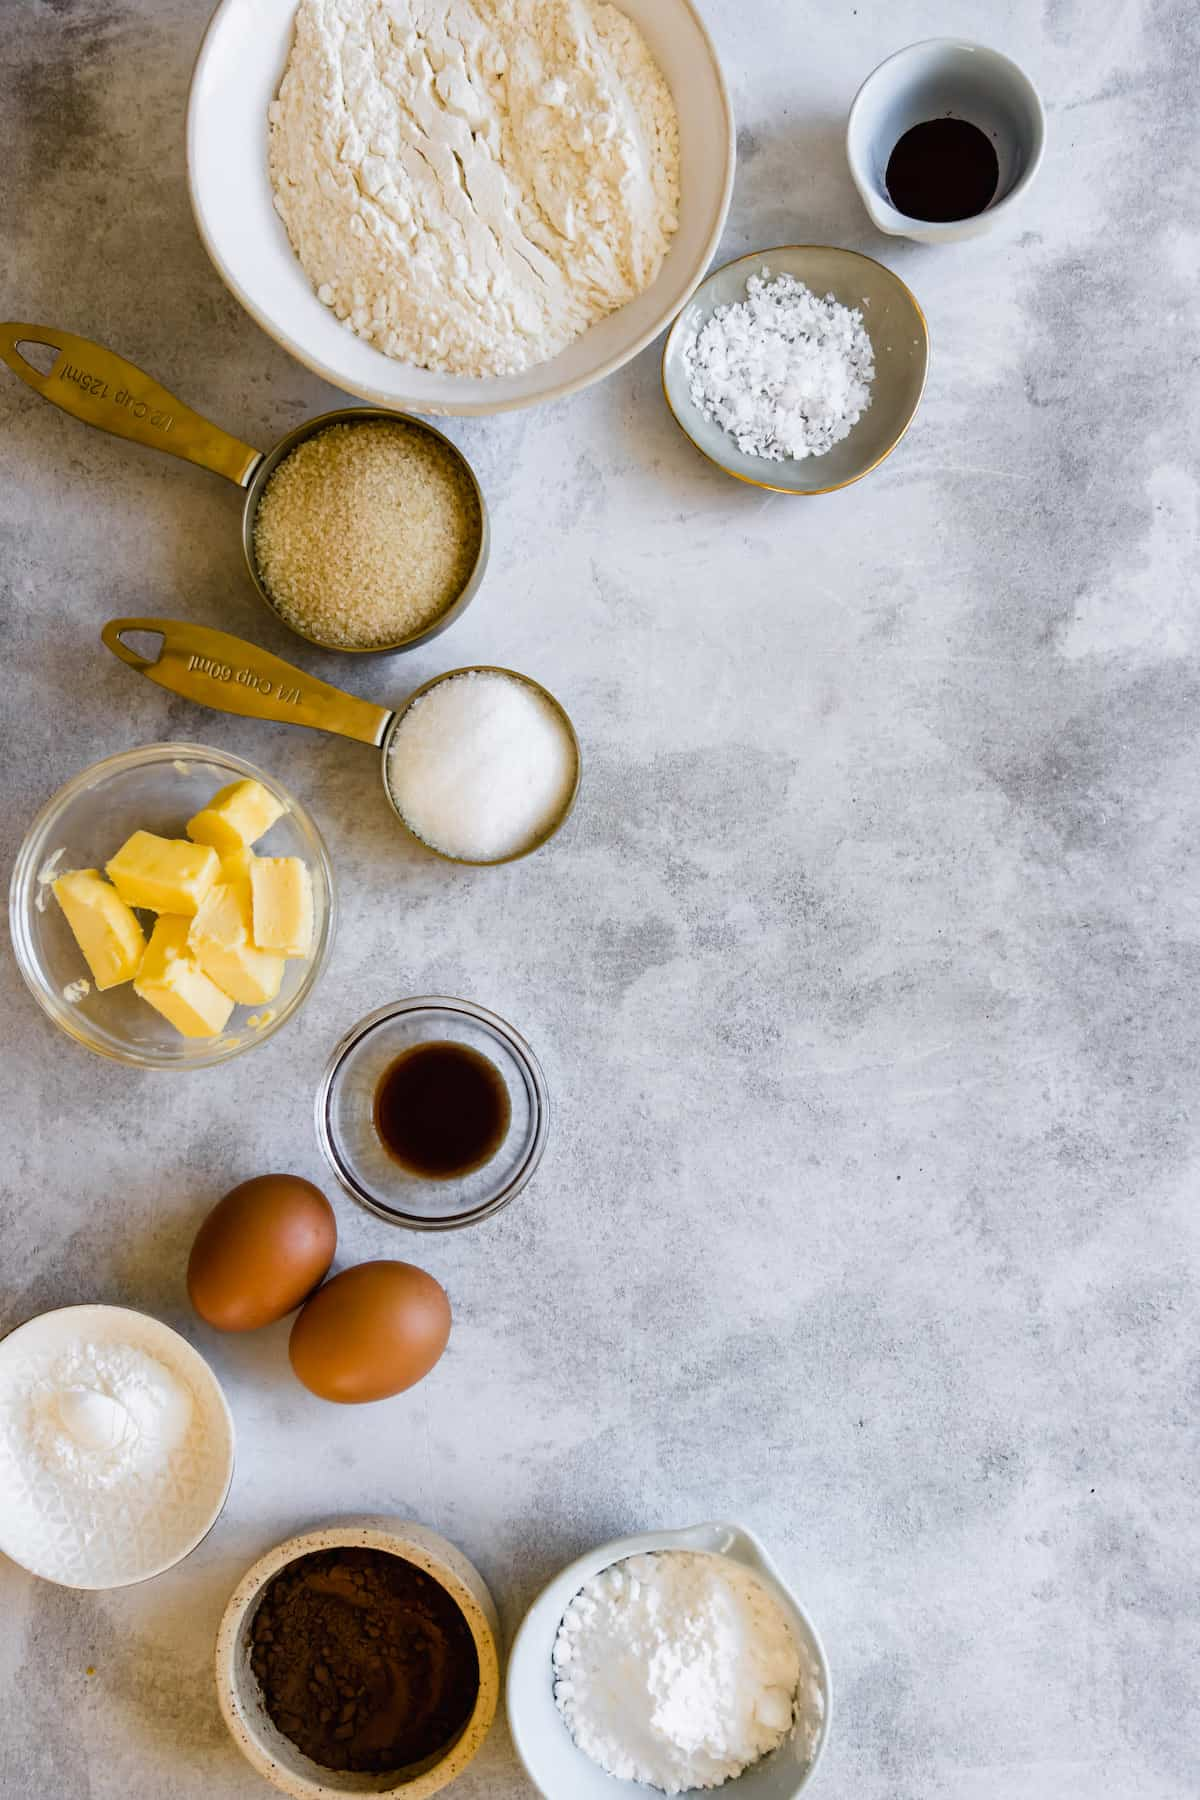 Eggs, Vanilla, Butter, Flour and the Remaining Cookie Ingredients on a Countertop